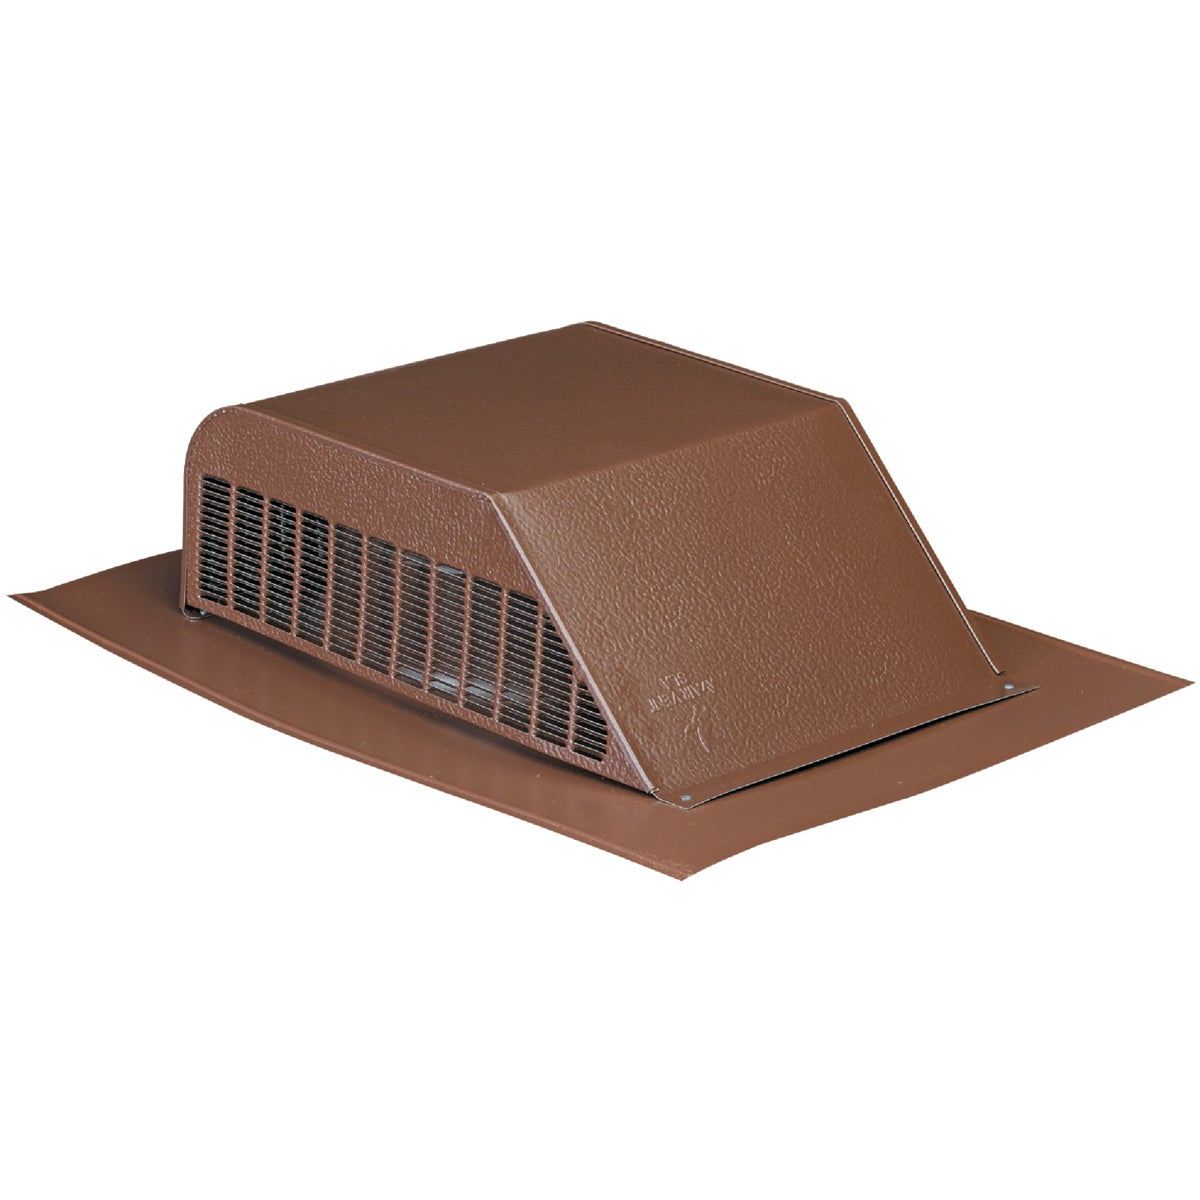 "50""BRN GAV S/B ROOF VENT - RVG55086 by Air Vent Inc"